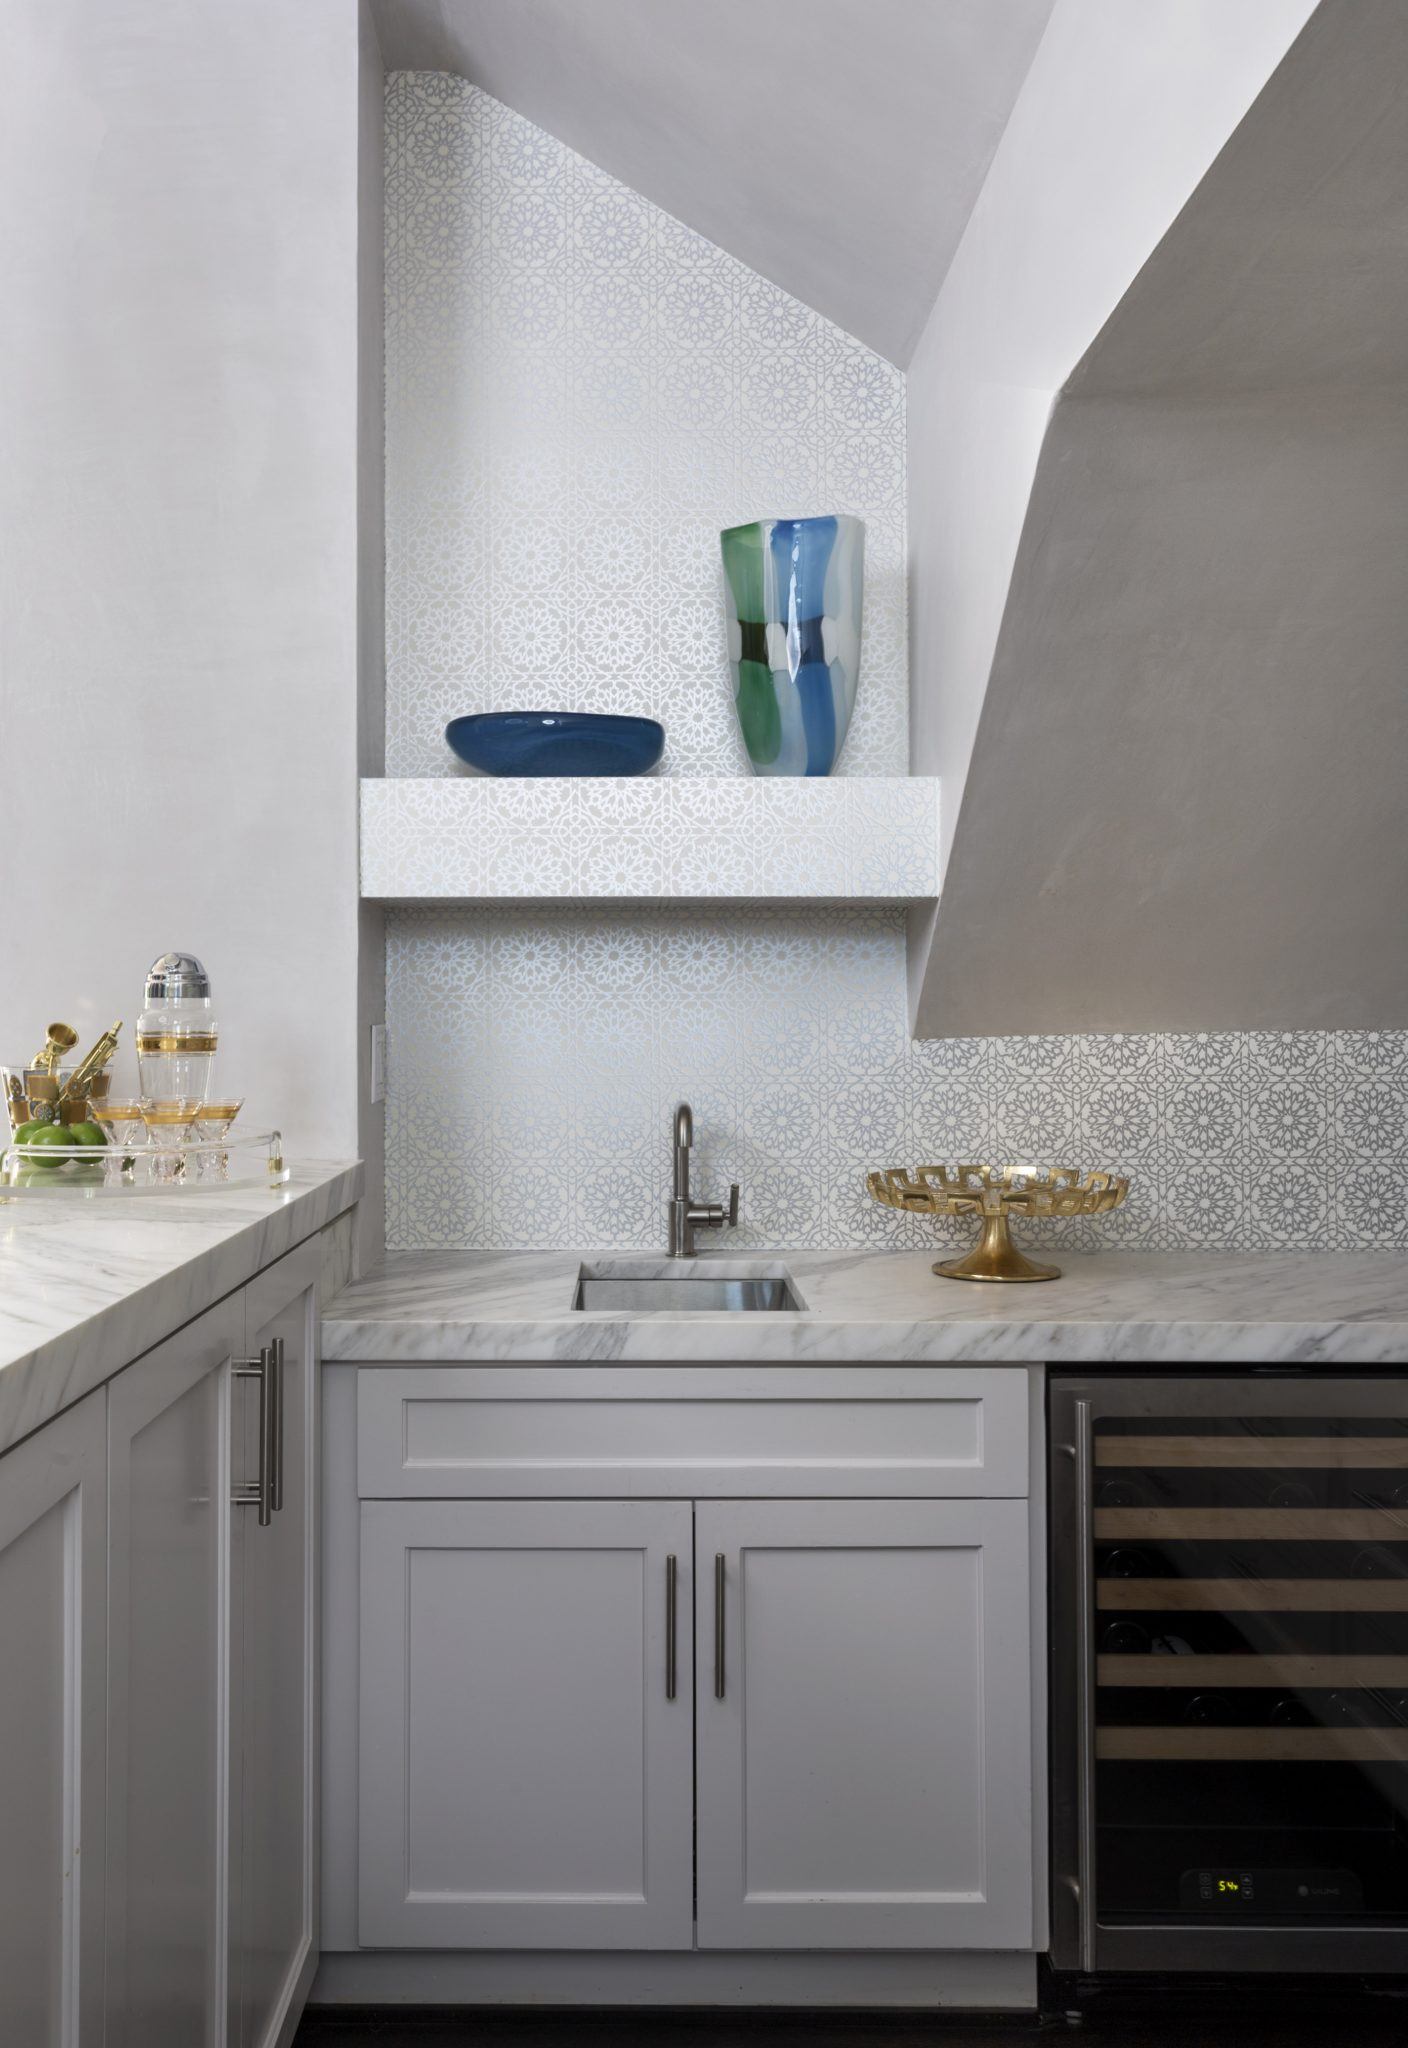 Tanglewood Houston Bar Vignette with Patterned Wallpaper by Cindy Witmer Designs